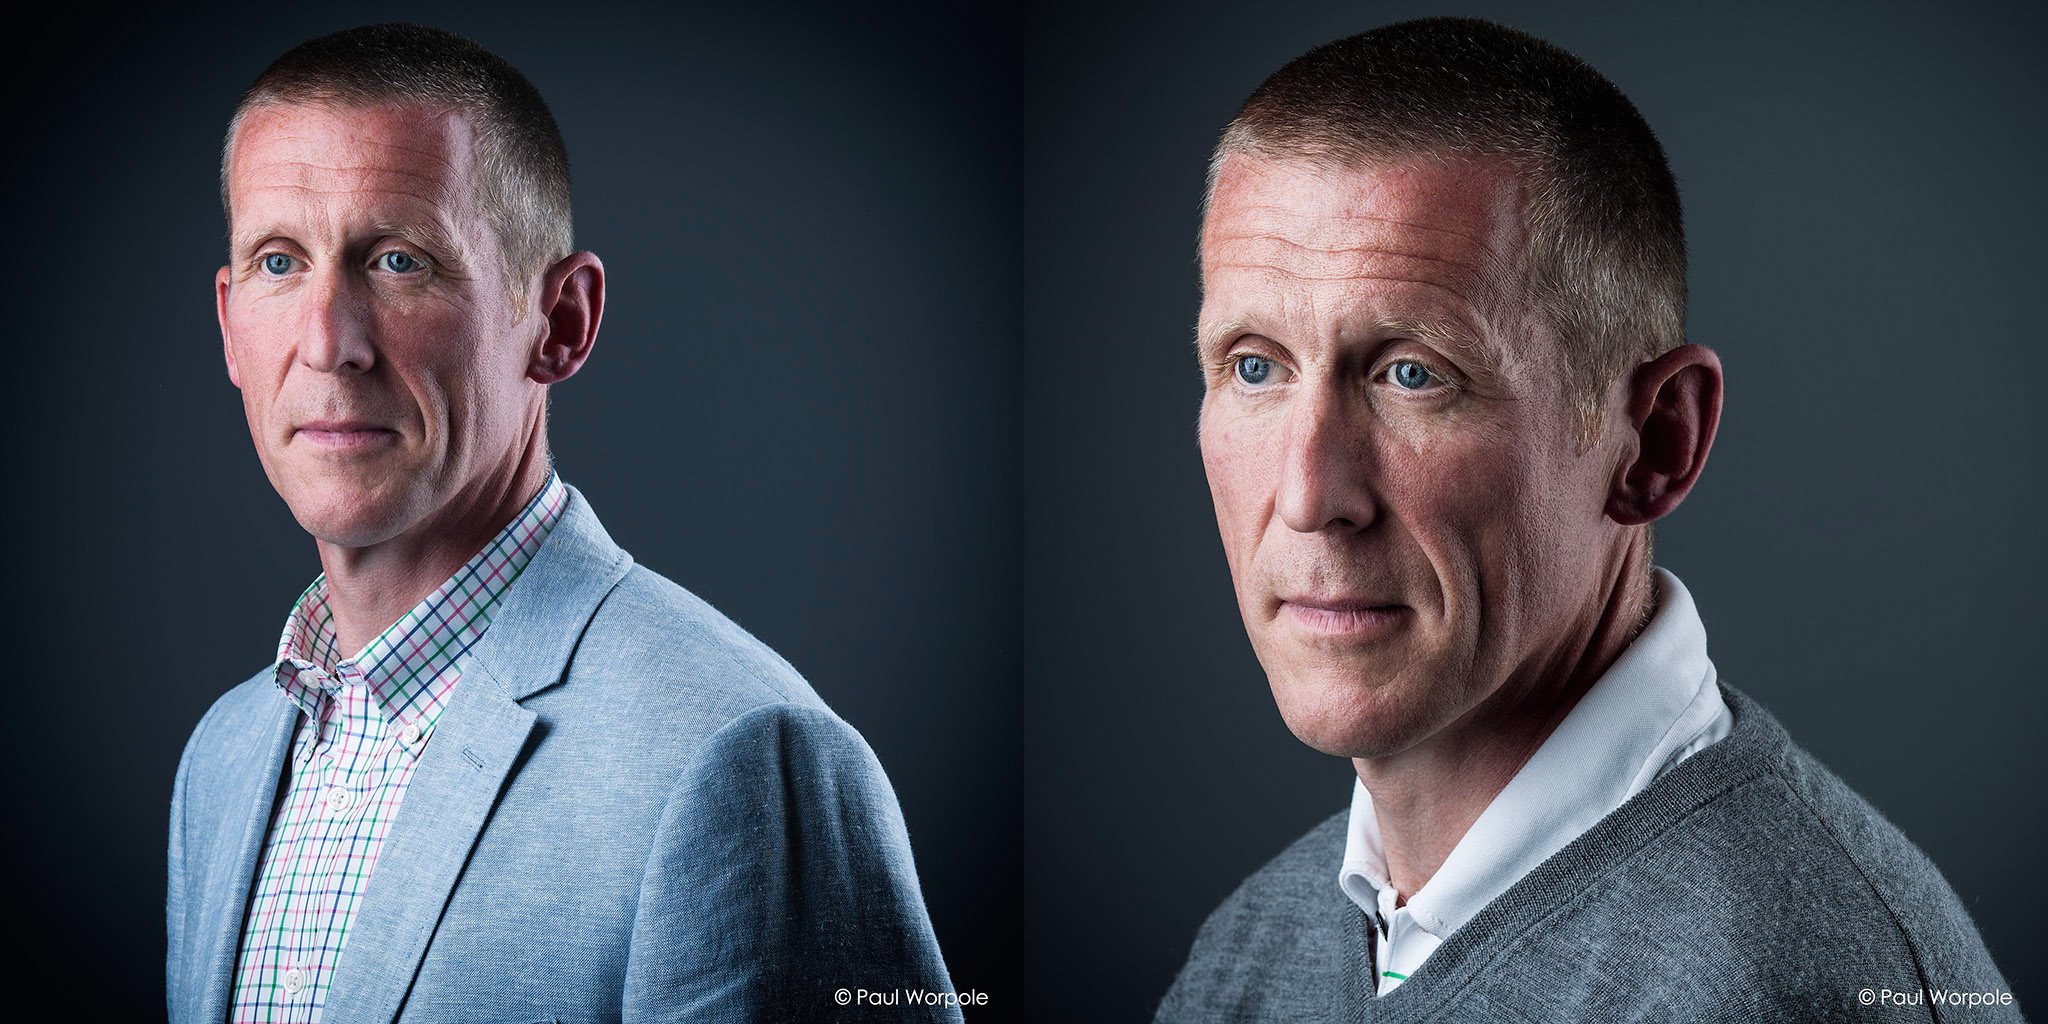 Two Portraits of Man with Crew Cut in Black and White © Paul Worpole Photography